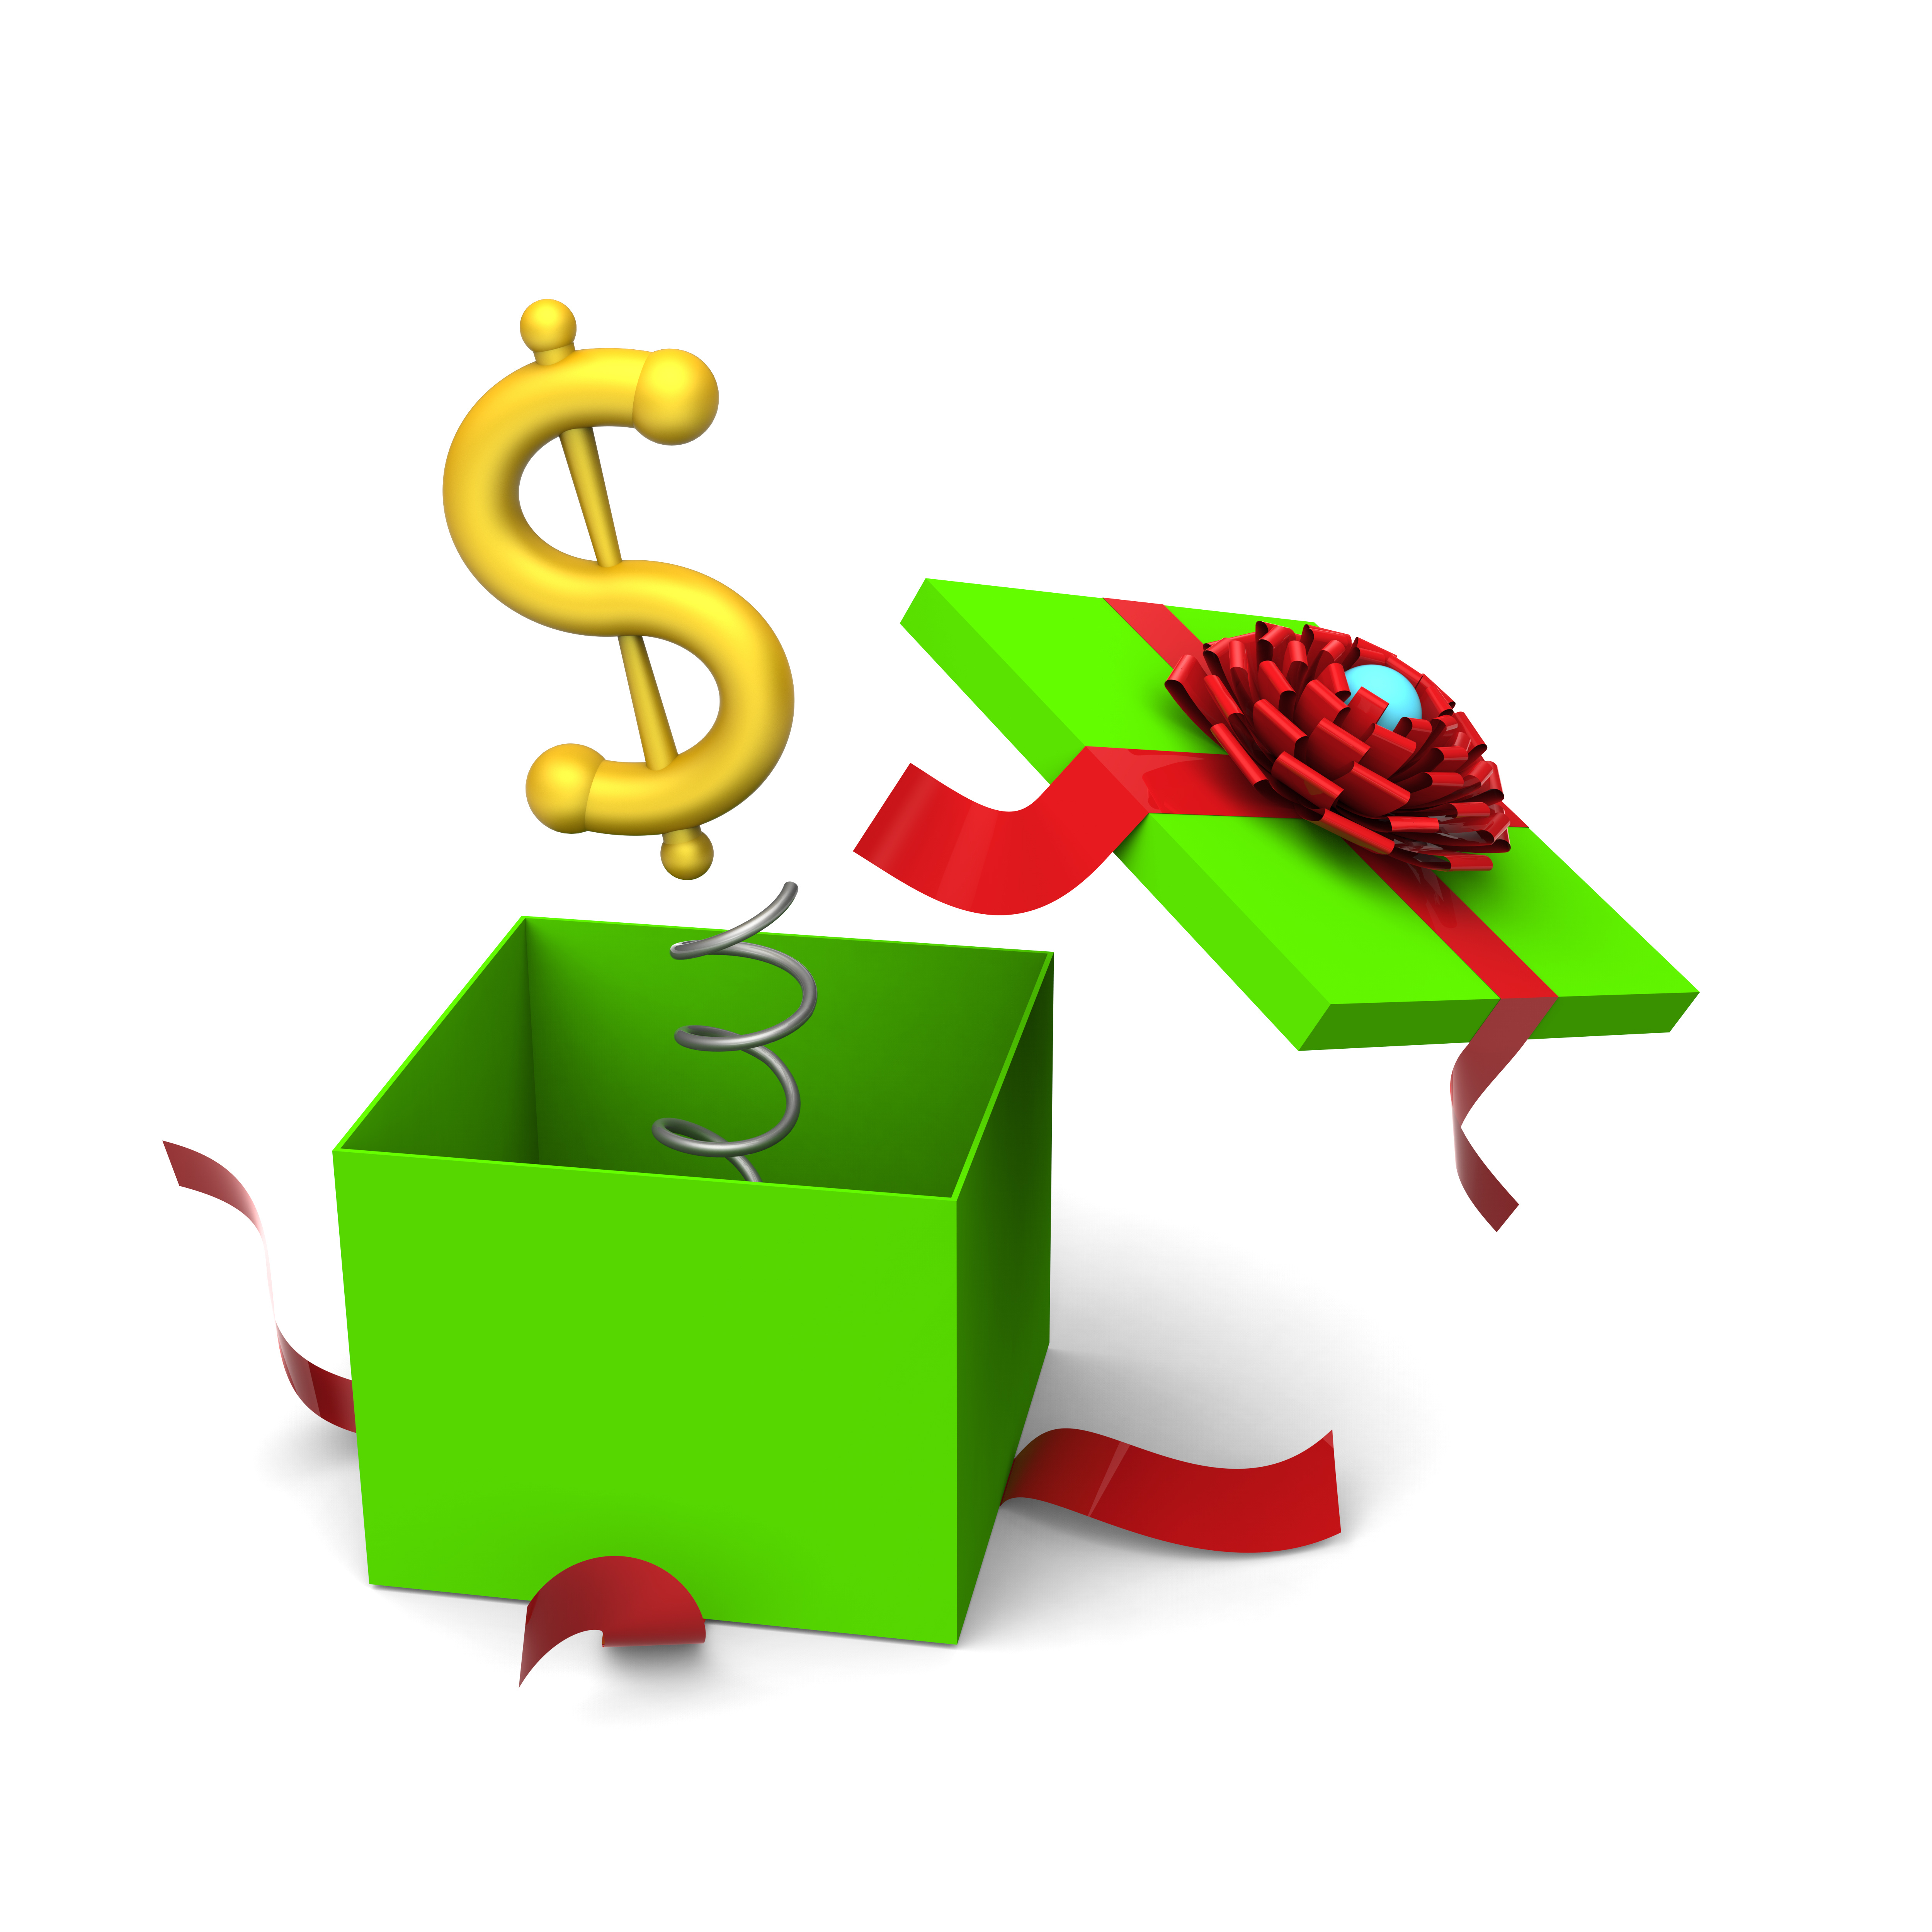 3D of dollar symbol springing out from a green gift box